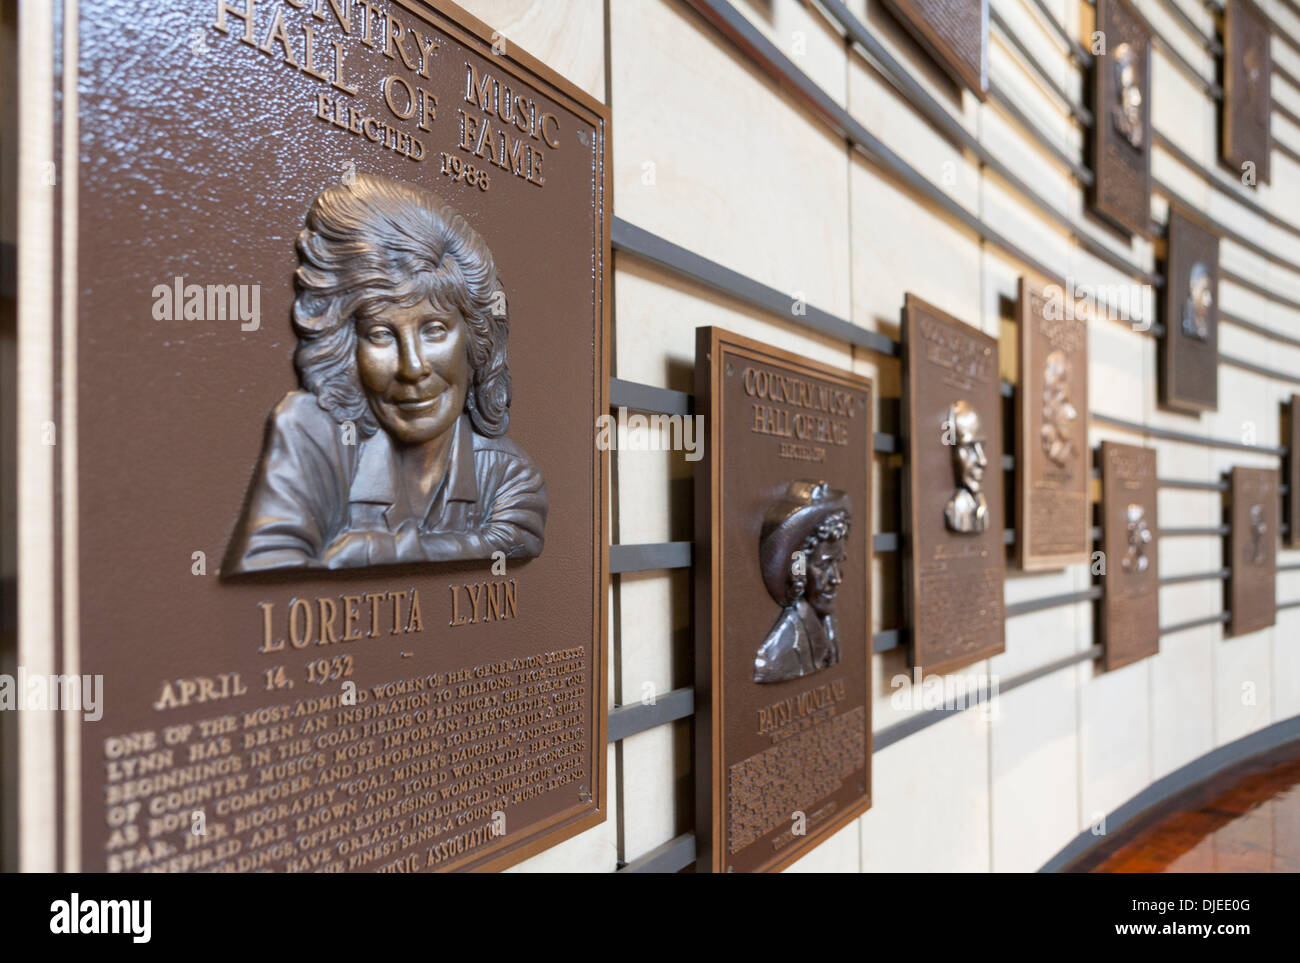 Loretta Lynn plaque among others in the Country Music Hall of Fame in Nashville, TN, USA - Stock Image